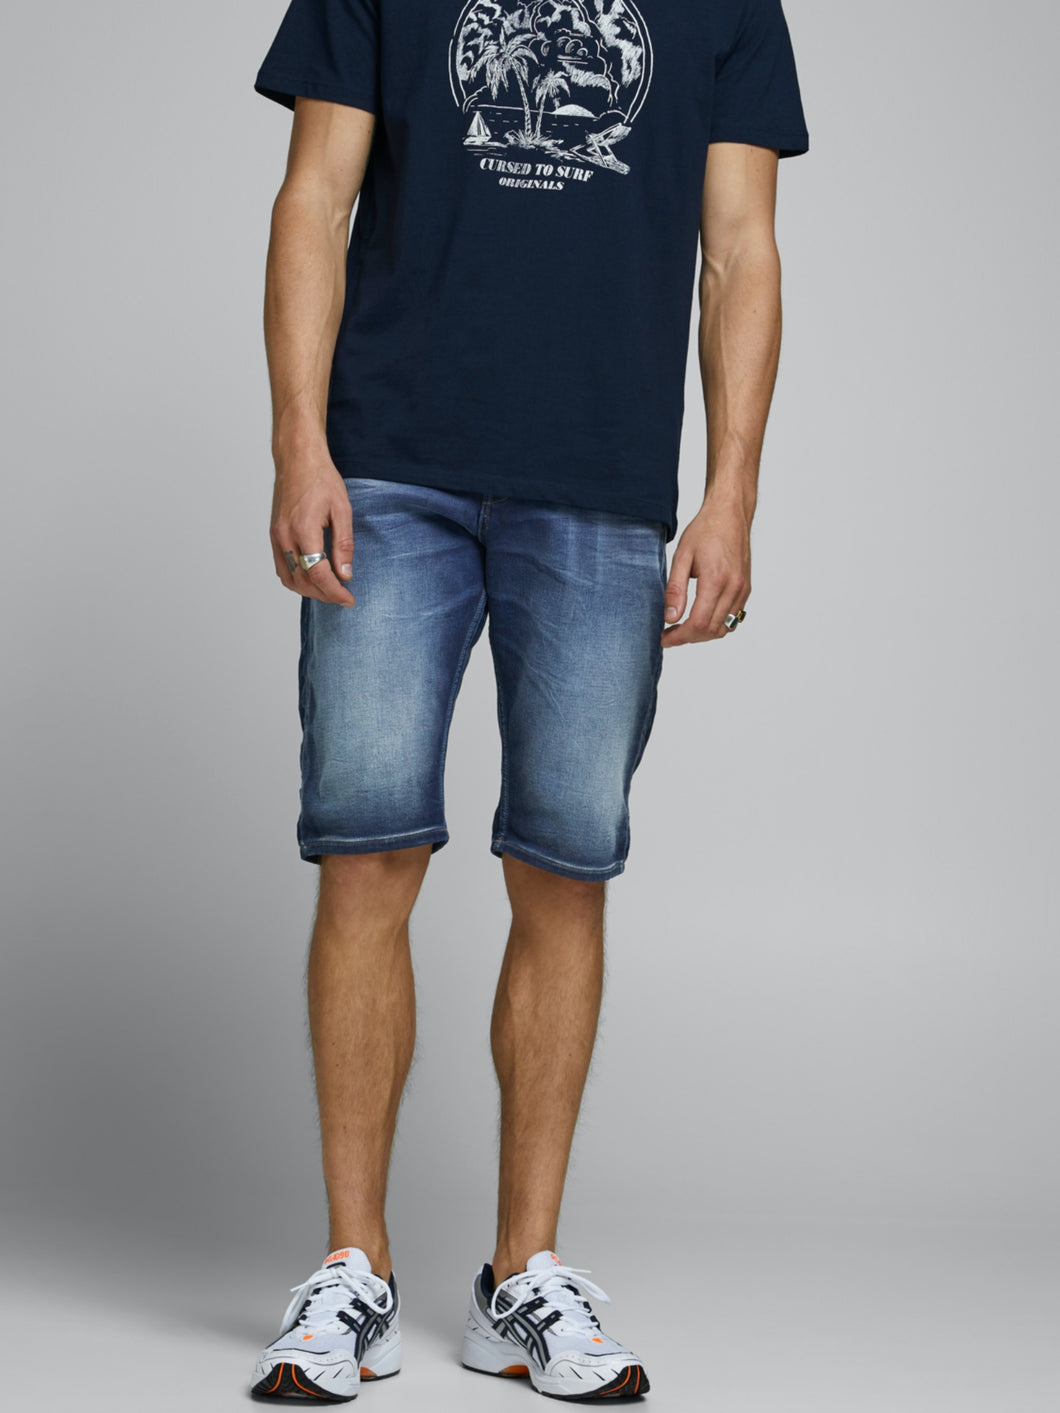 Rex Long Shorts 021 - Blue Denim / S - SHORTS DENIM, HERR,